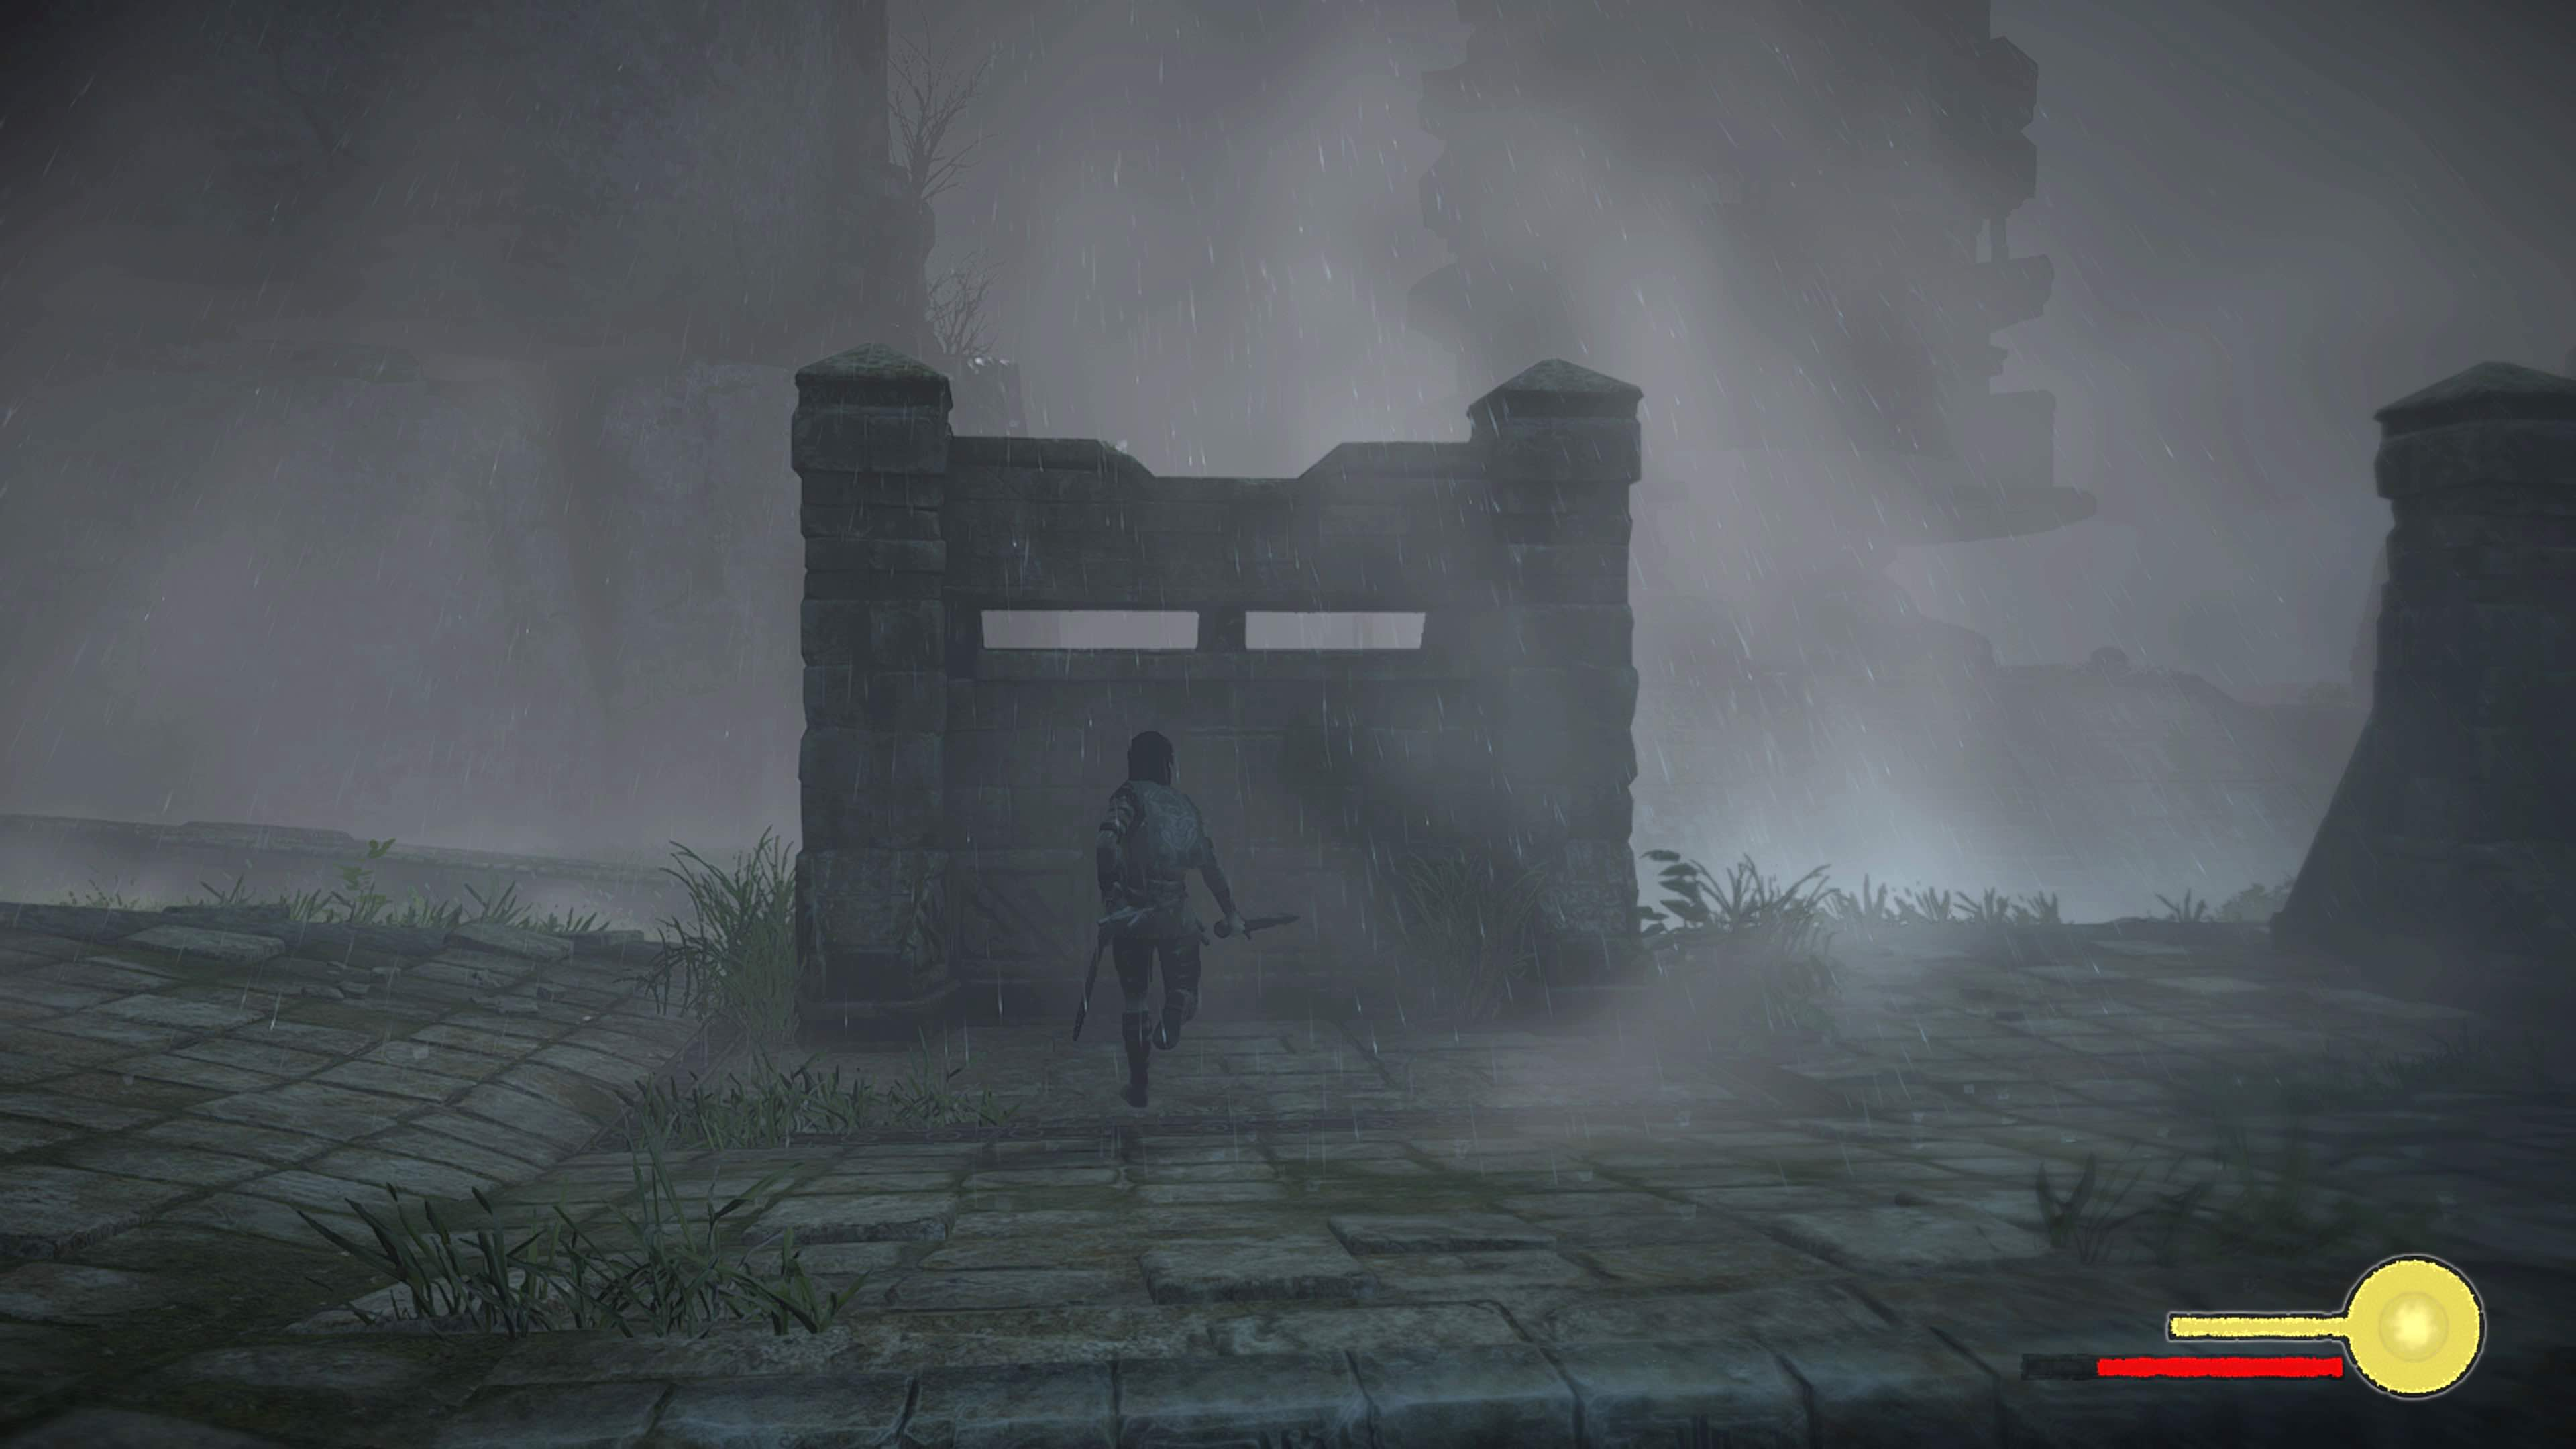 Shadow_of_the_Colossus_Coloso_16_4